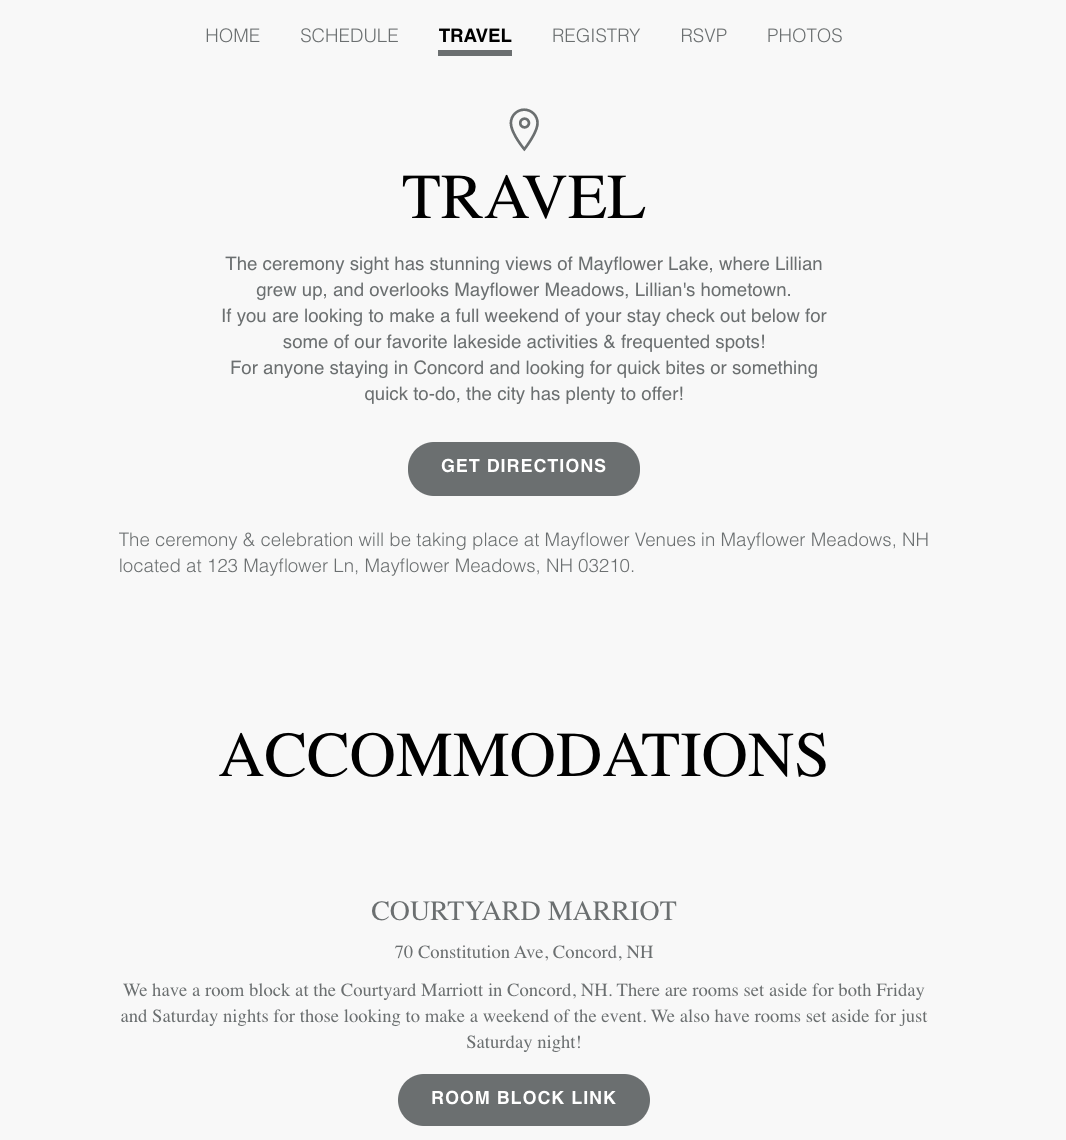 Travel_and_Accommodations